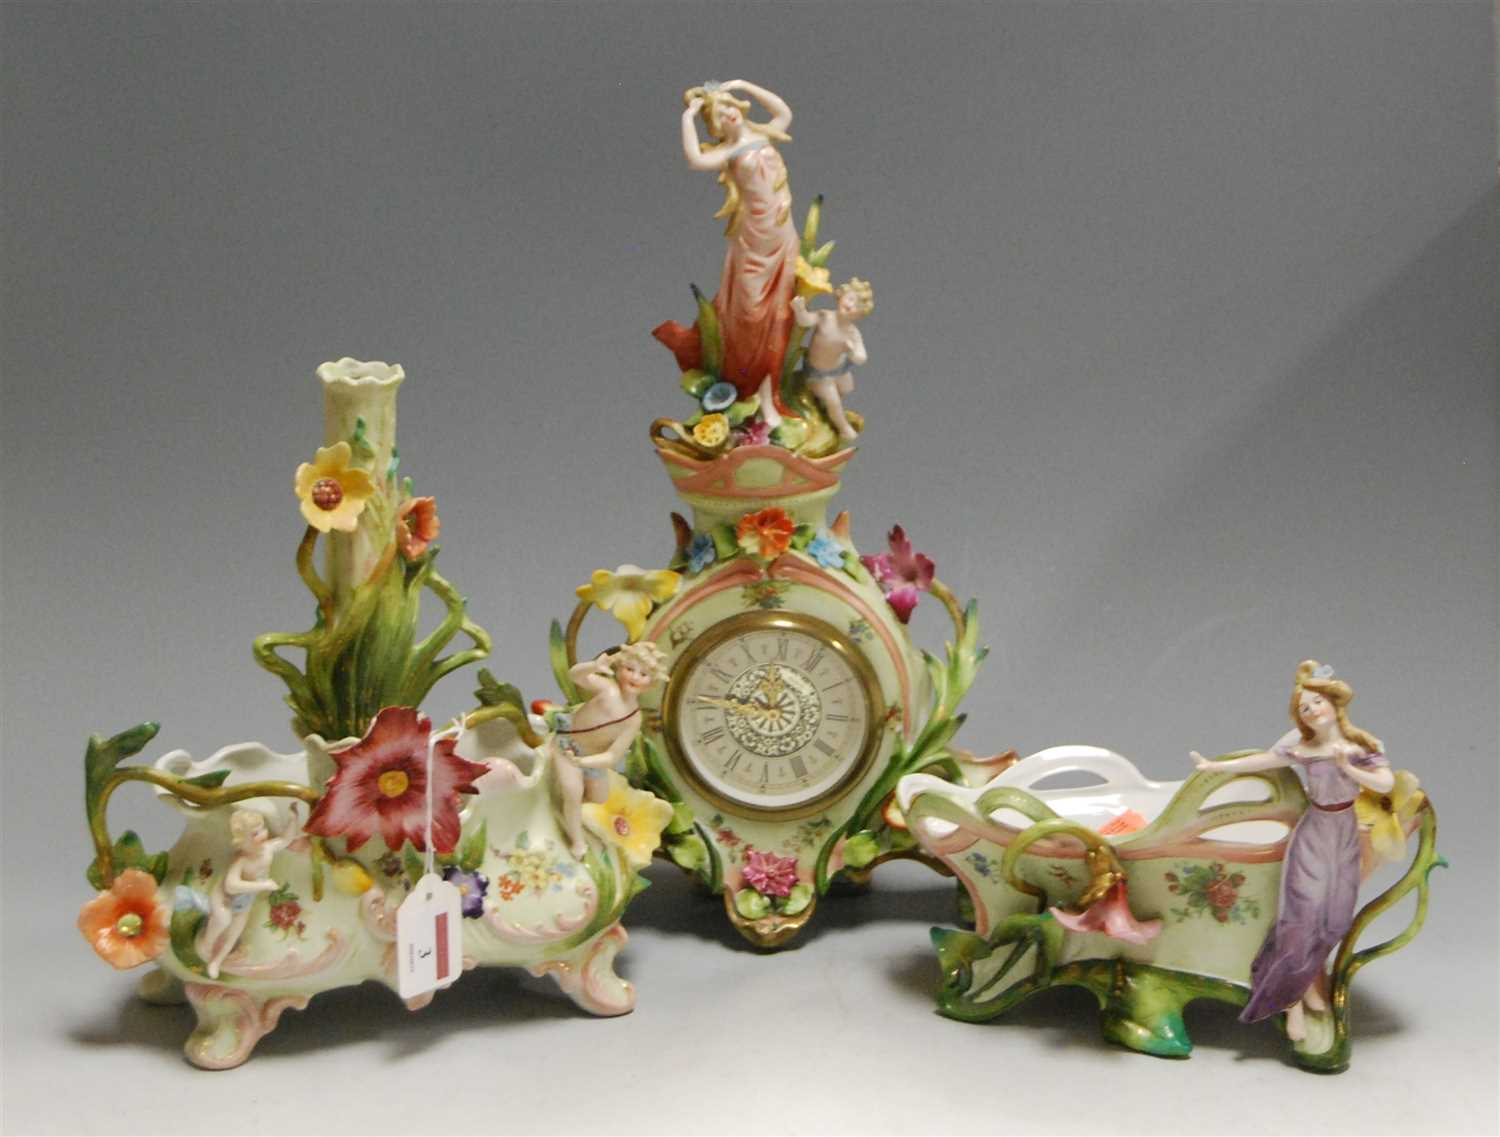 Lot 3-A German porcelain cased mantel clock, having a...